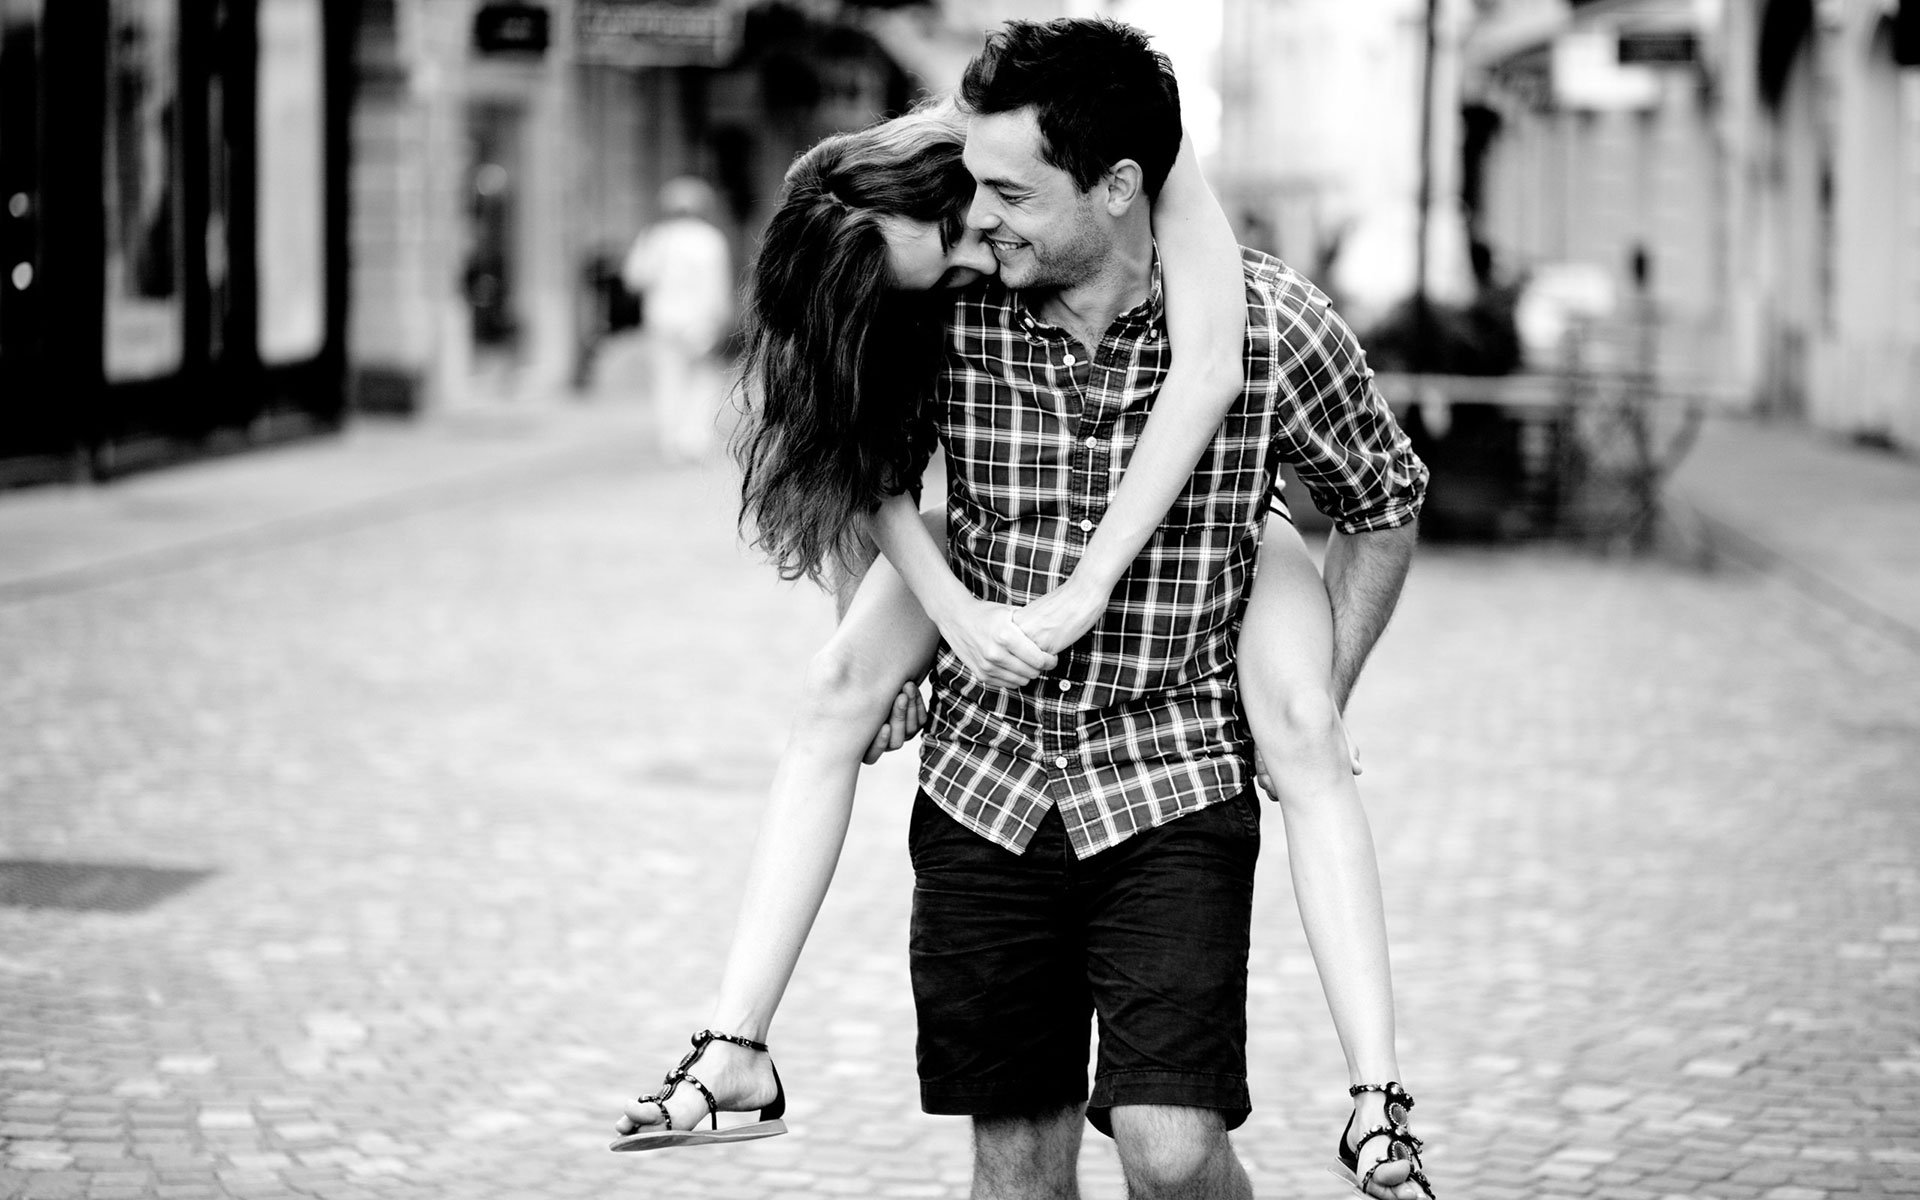 Love couples Wallpapers Tumblr : Sweet Black and White Romance Wallpaper of Love couples